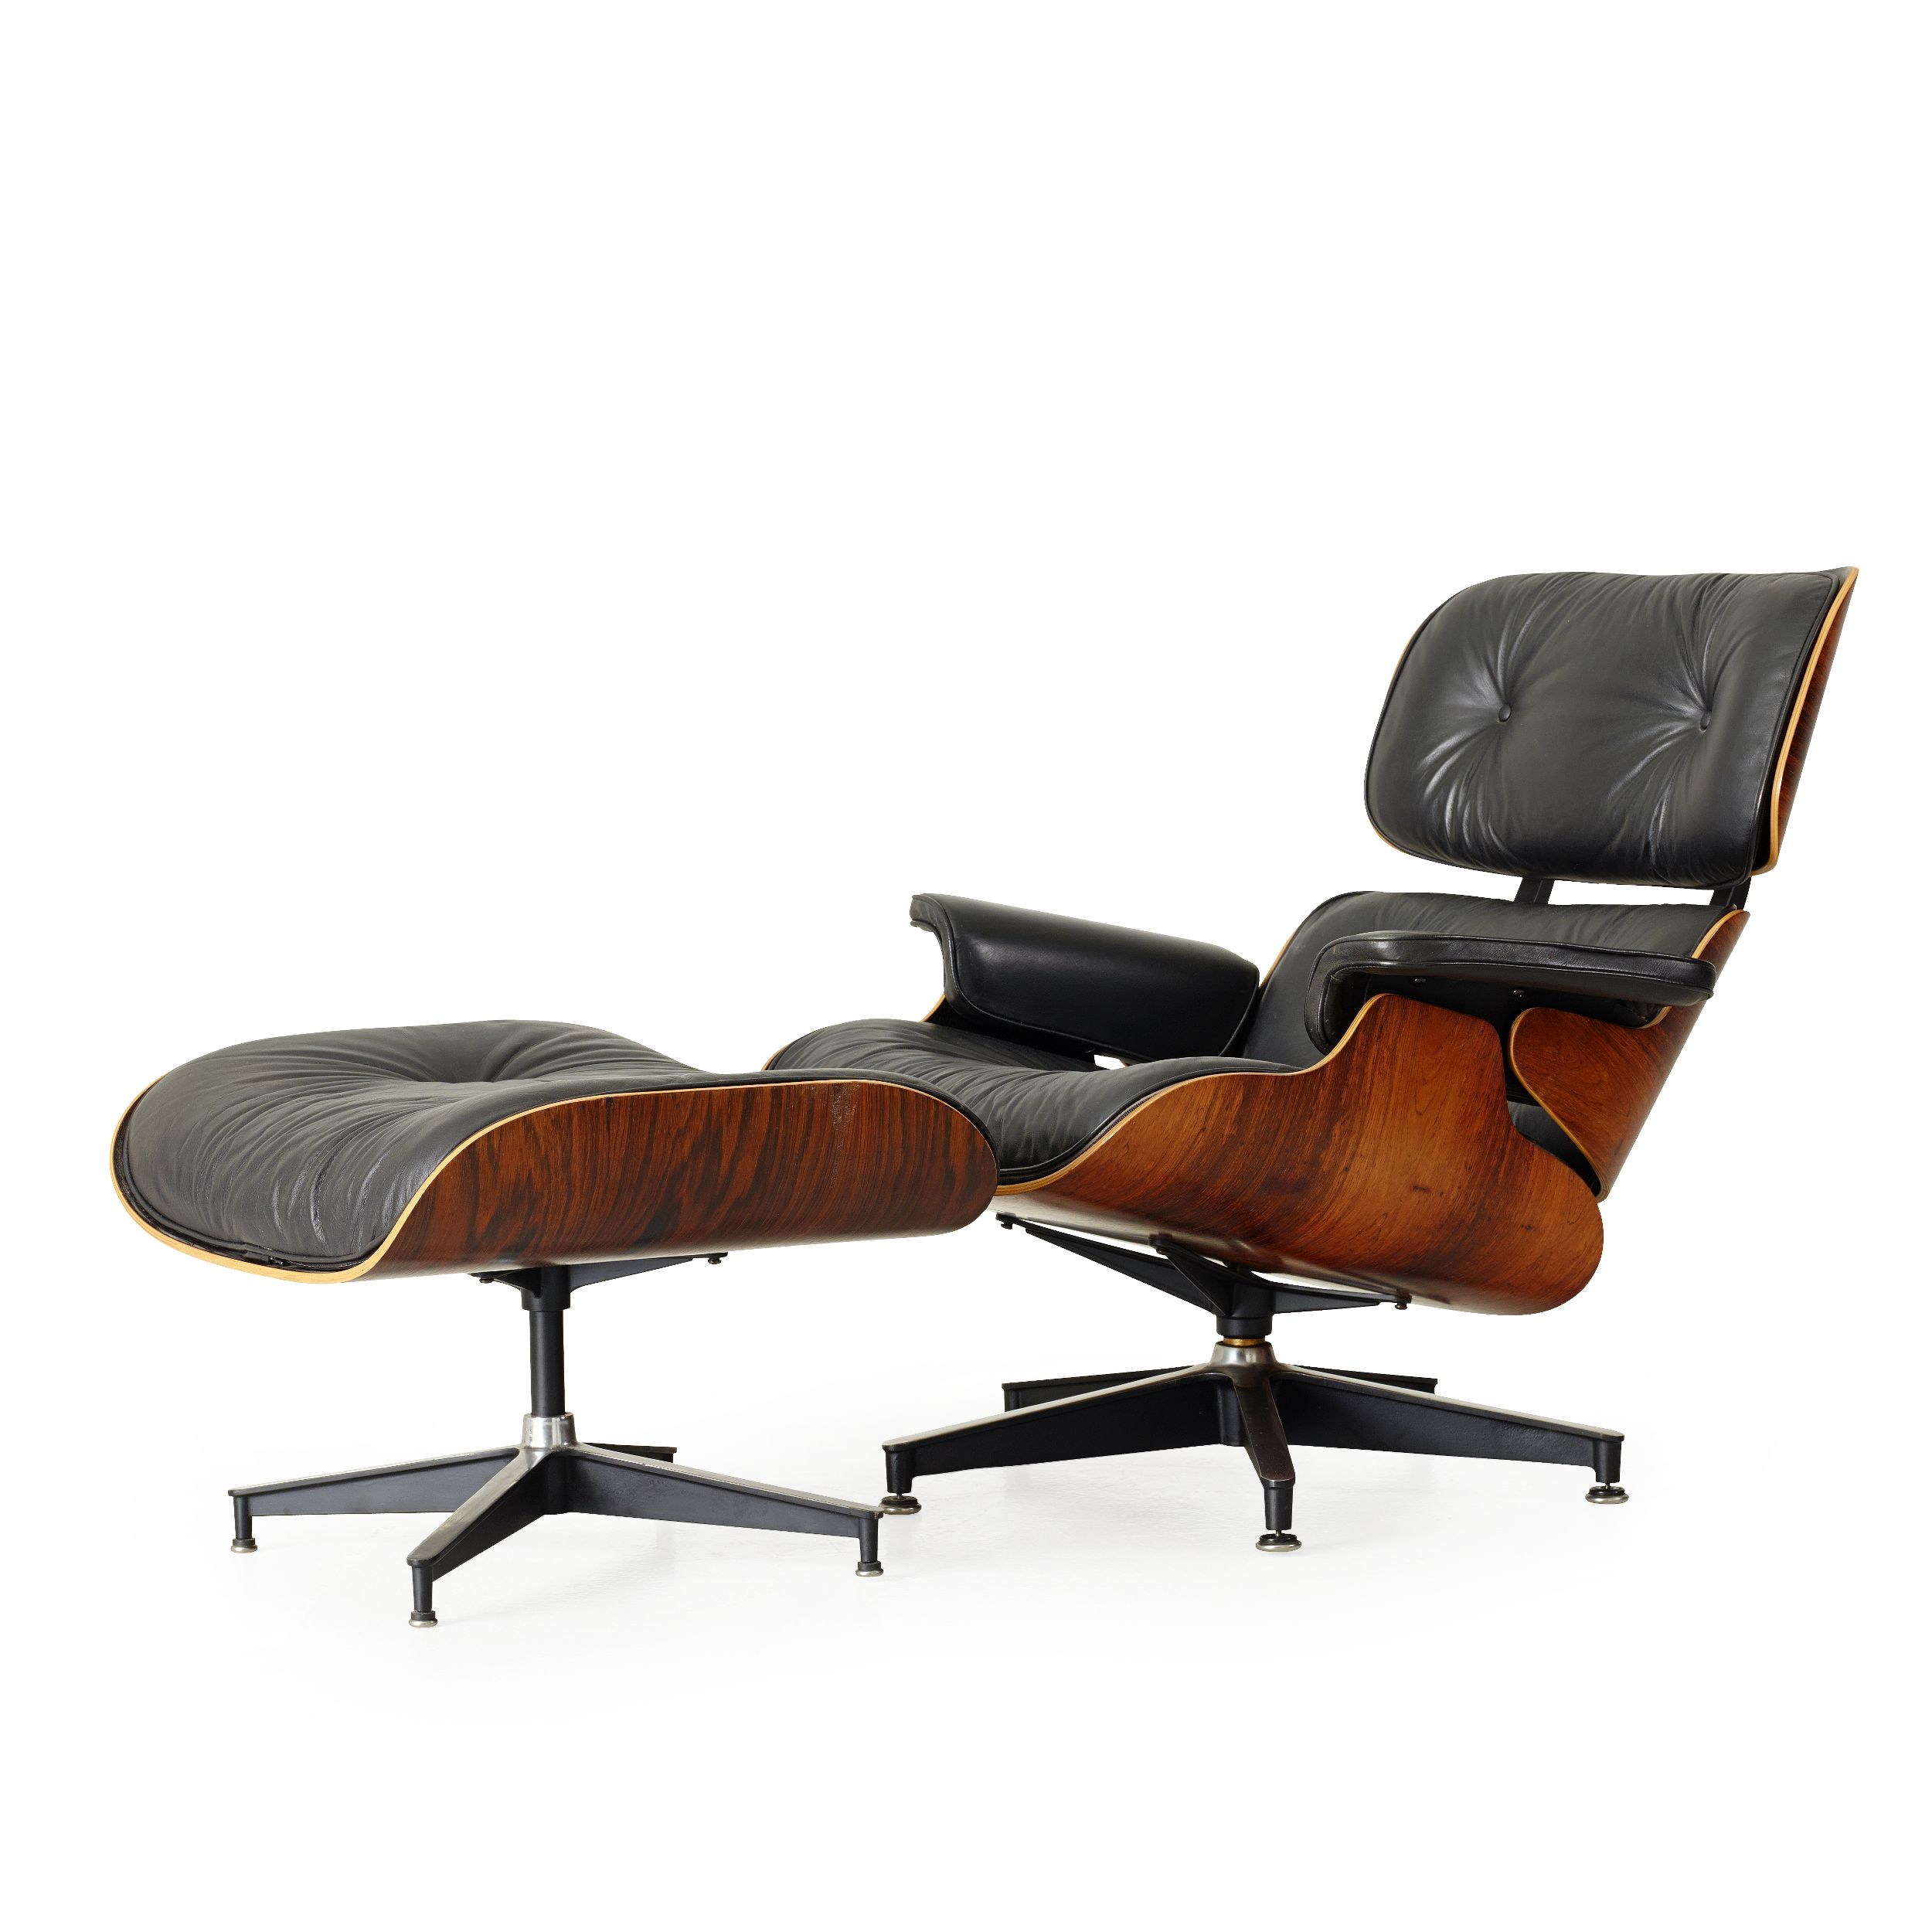 """Charles & Ray Eames, """"Lounge chair and Ottoman"""""""